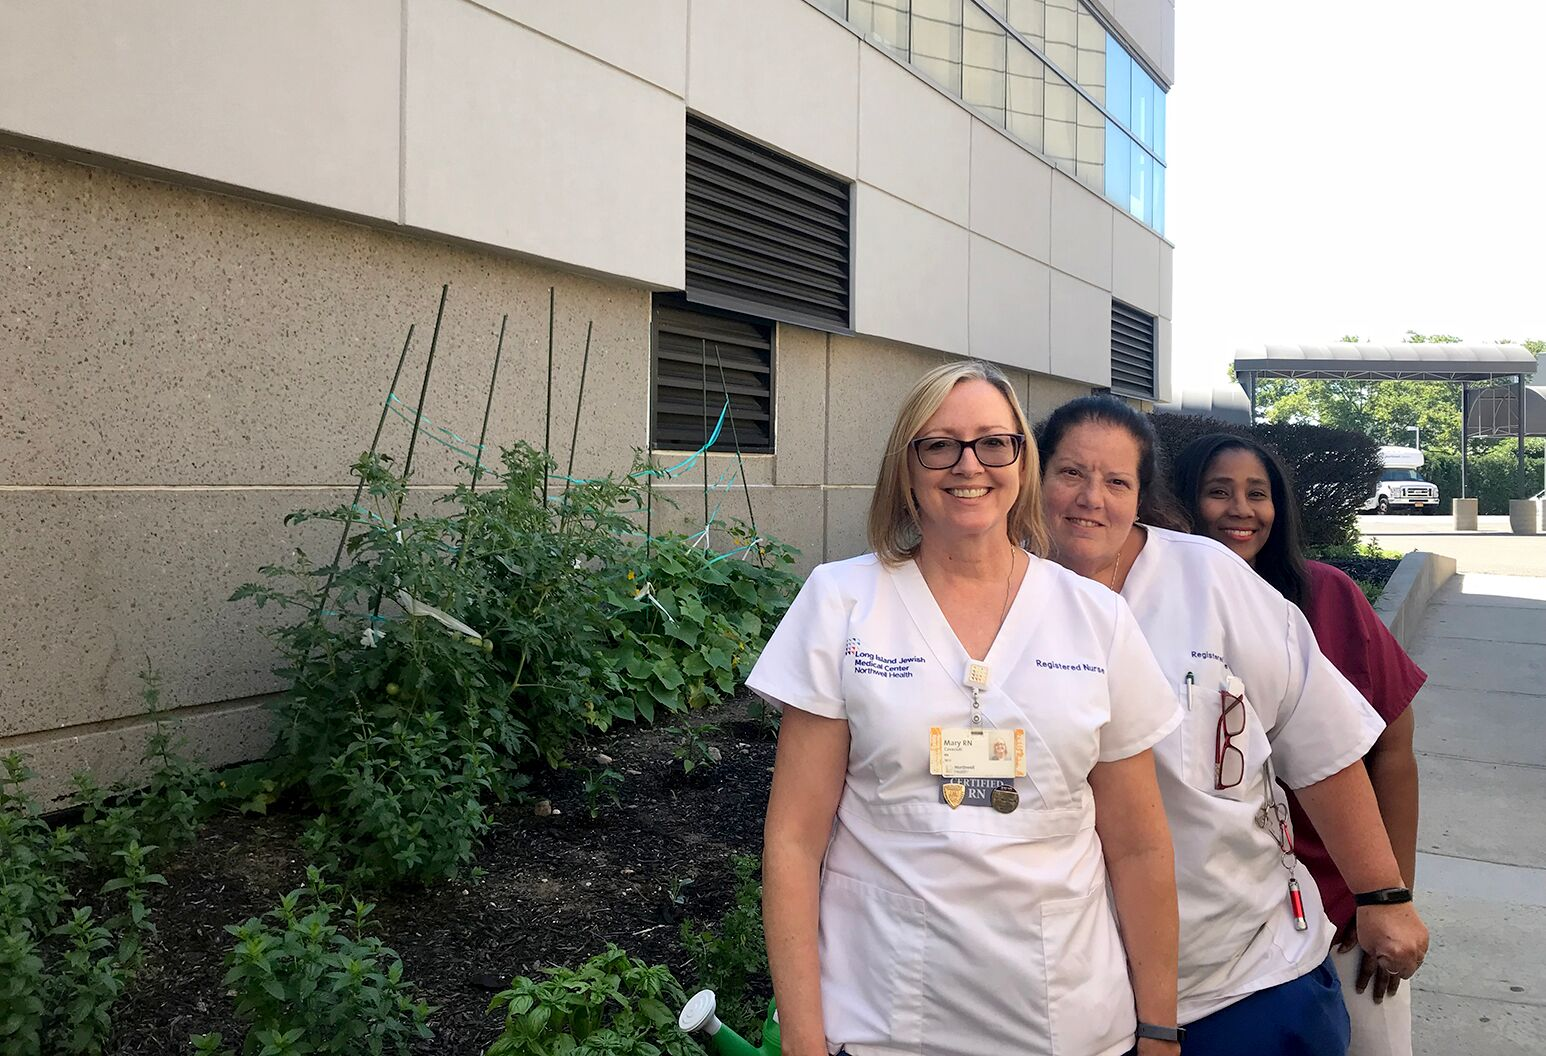 Nurses gardening at LIJ